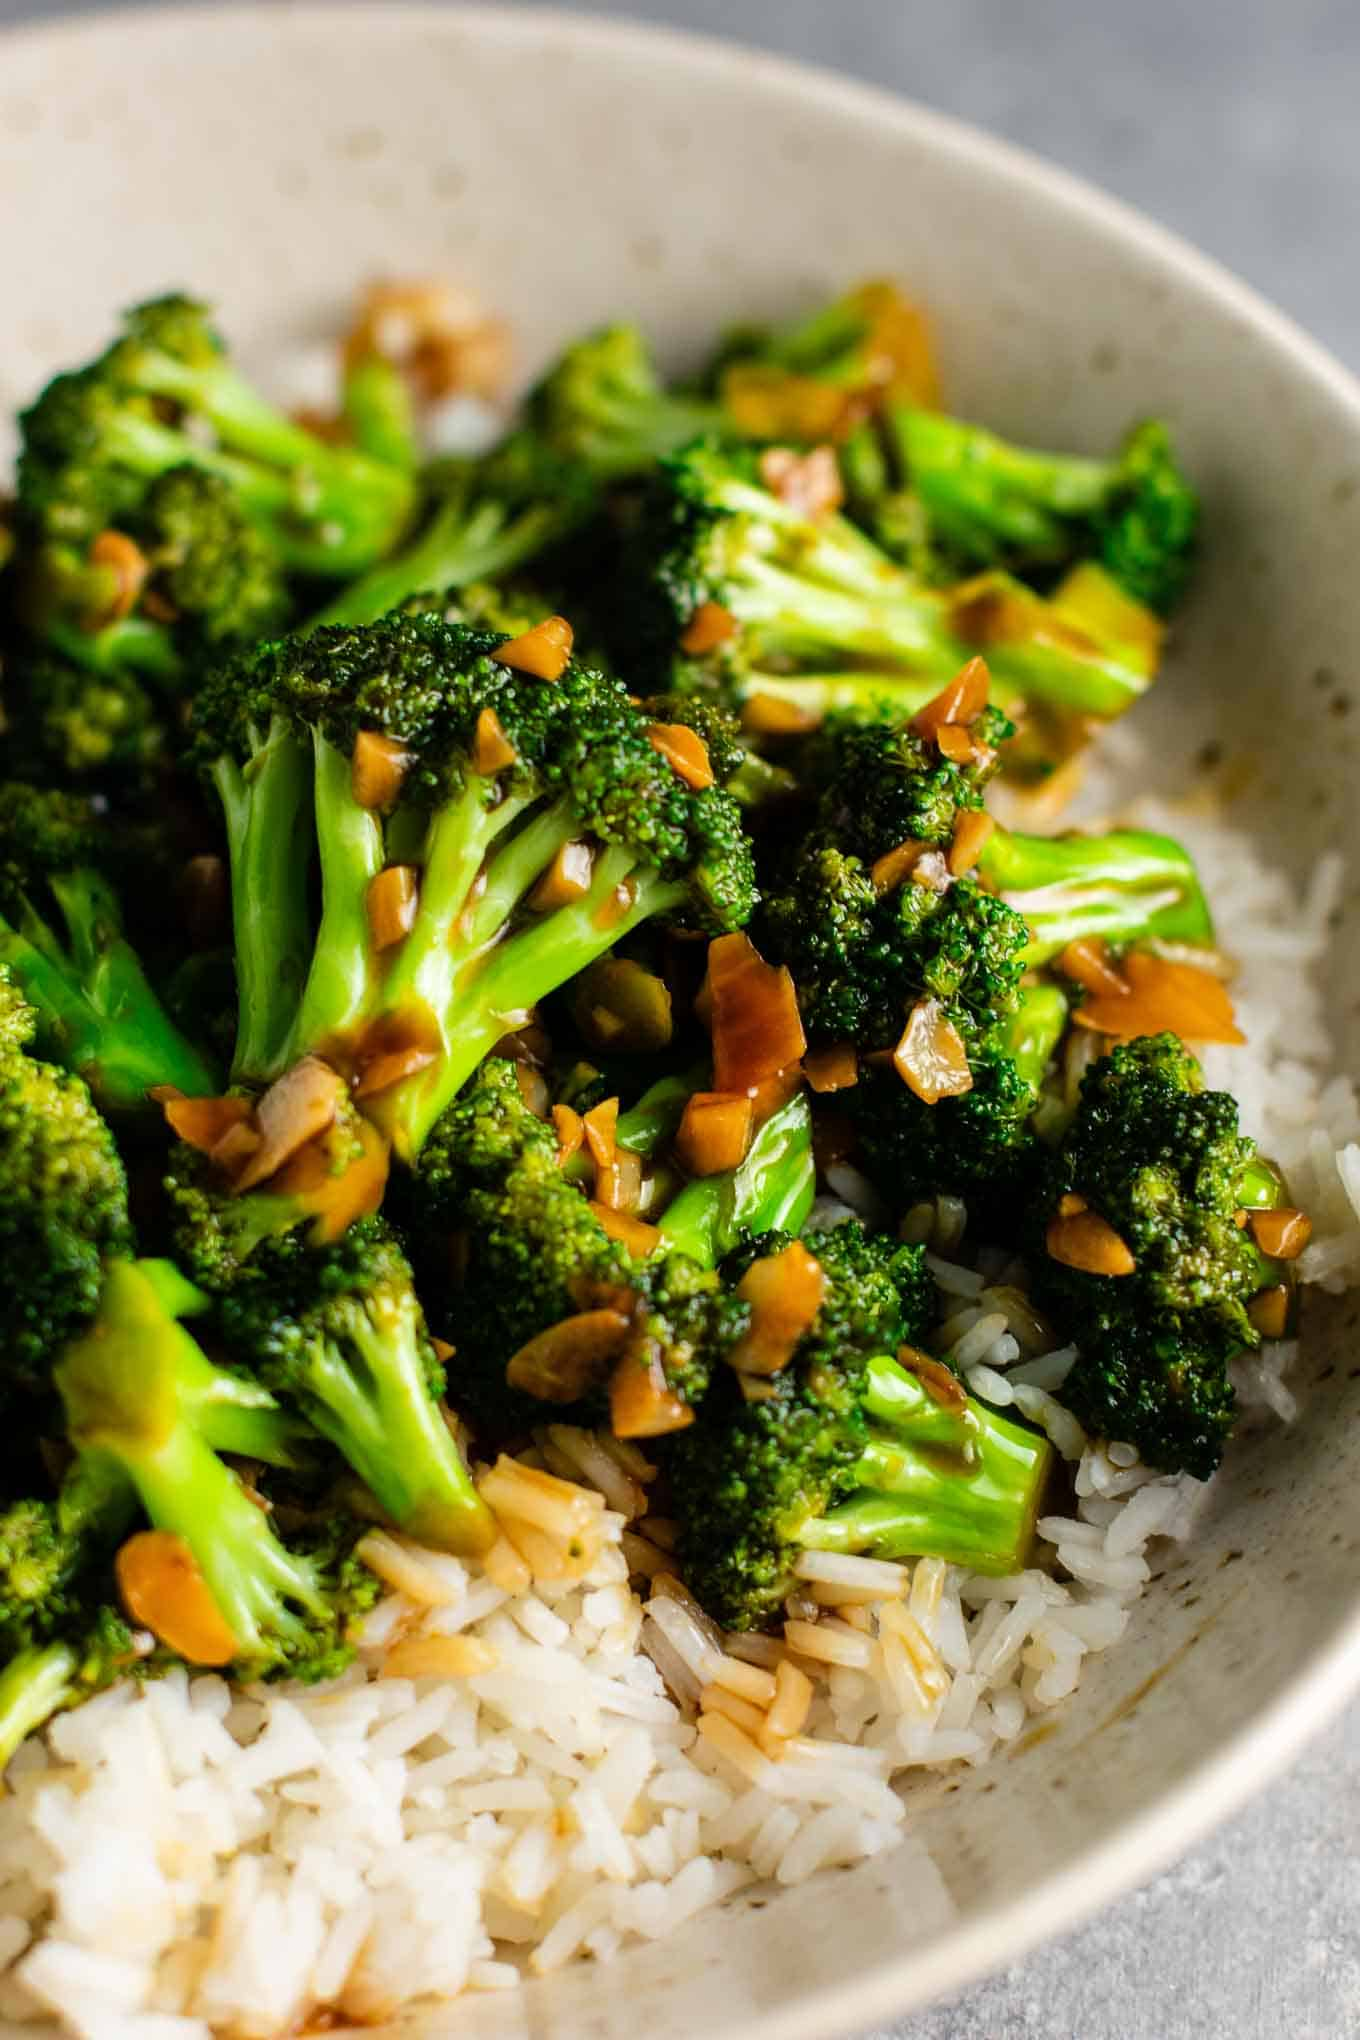 Broccoli stir fry recipe with garlic stir fry sauce